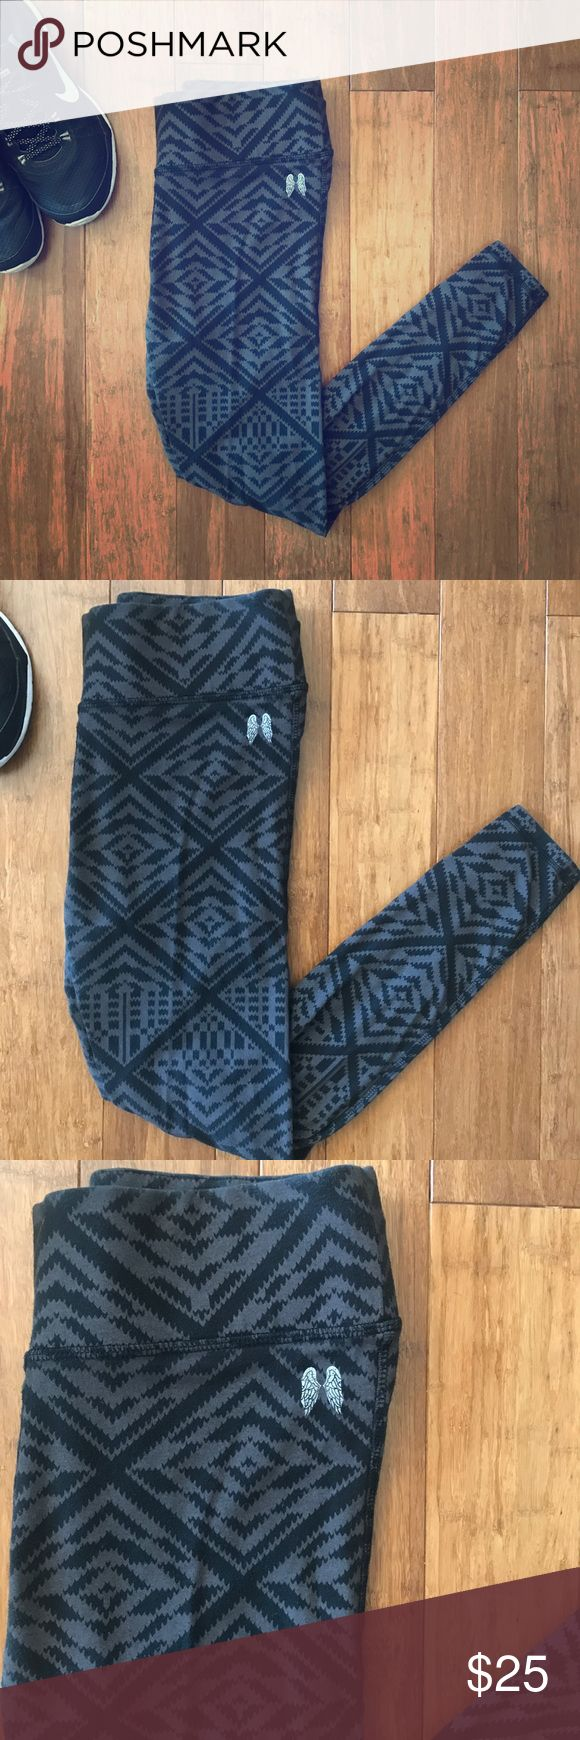 Victoria's Secret Aztec Print Anytime Leggings Victoria's Secret Aztec Print Anytime Leggings - Size Small/Short. Cotton Blend Leggings; Black and Gray Aztec print. 52% Cotton; 35% Polyester; 13% Elastane. Only worn once or twice! Perfect for working out or lounging! Victoria's Secret Pants Leggings